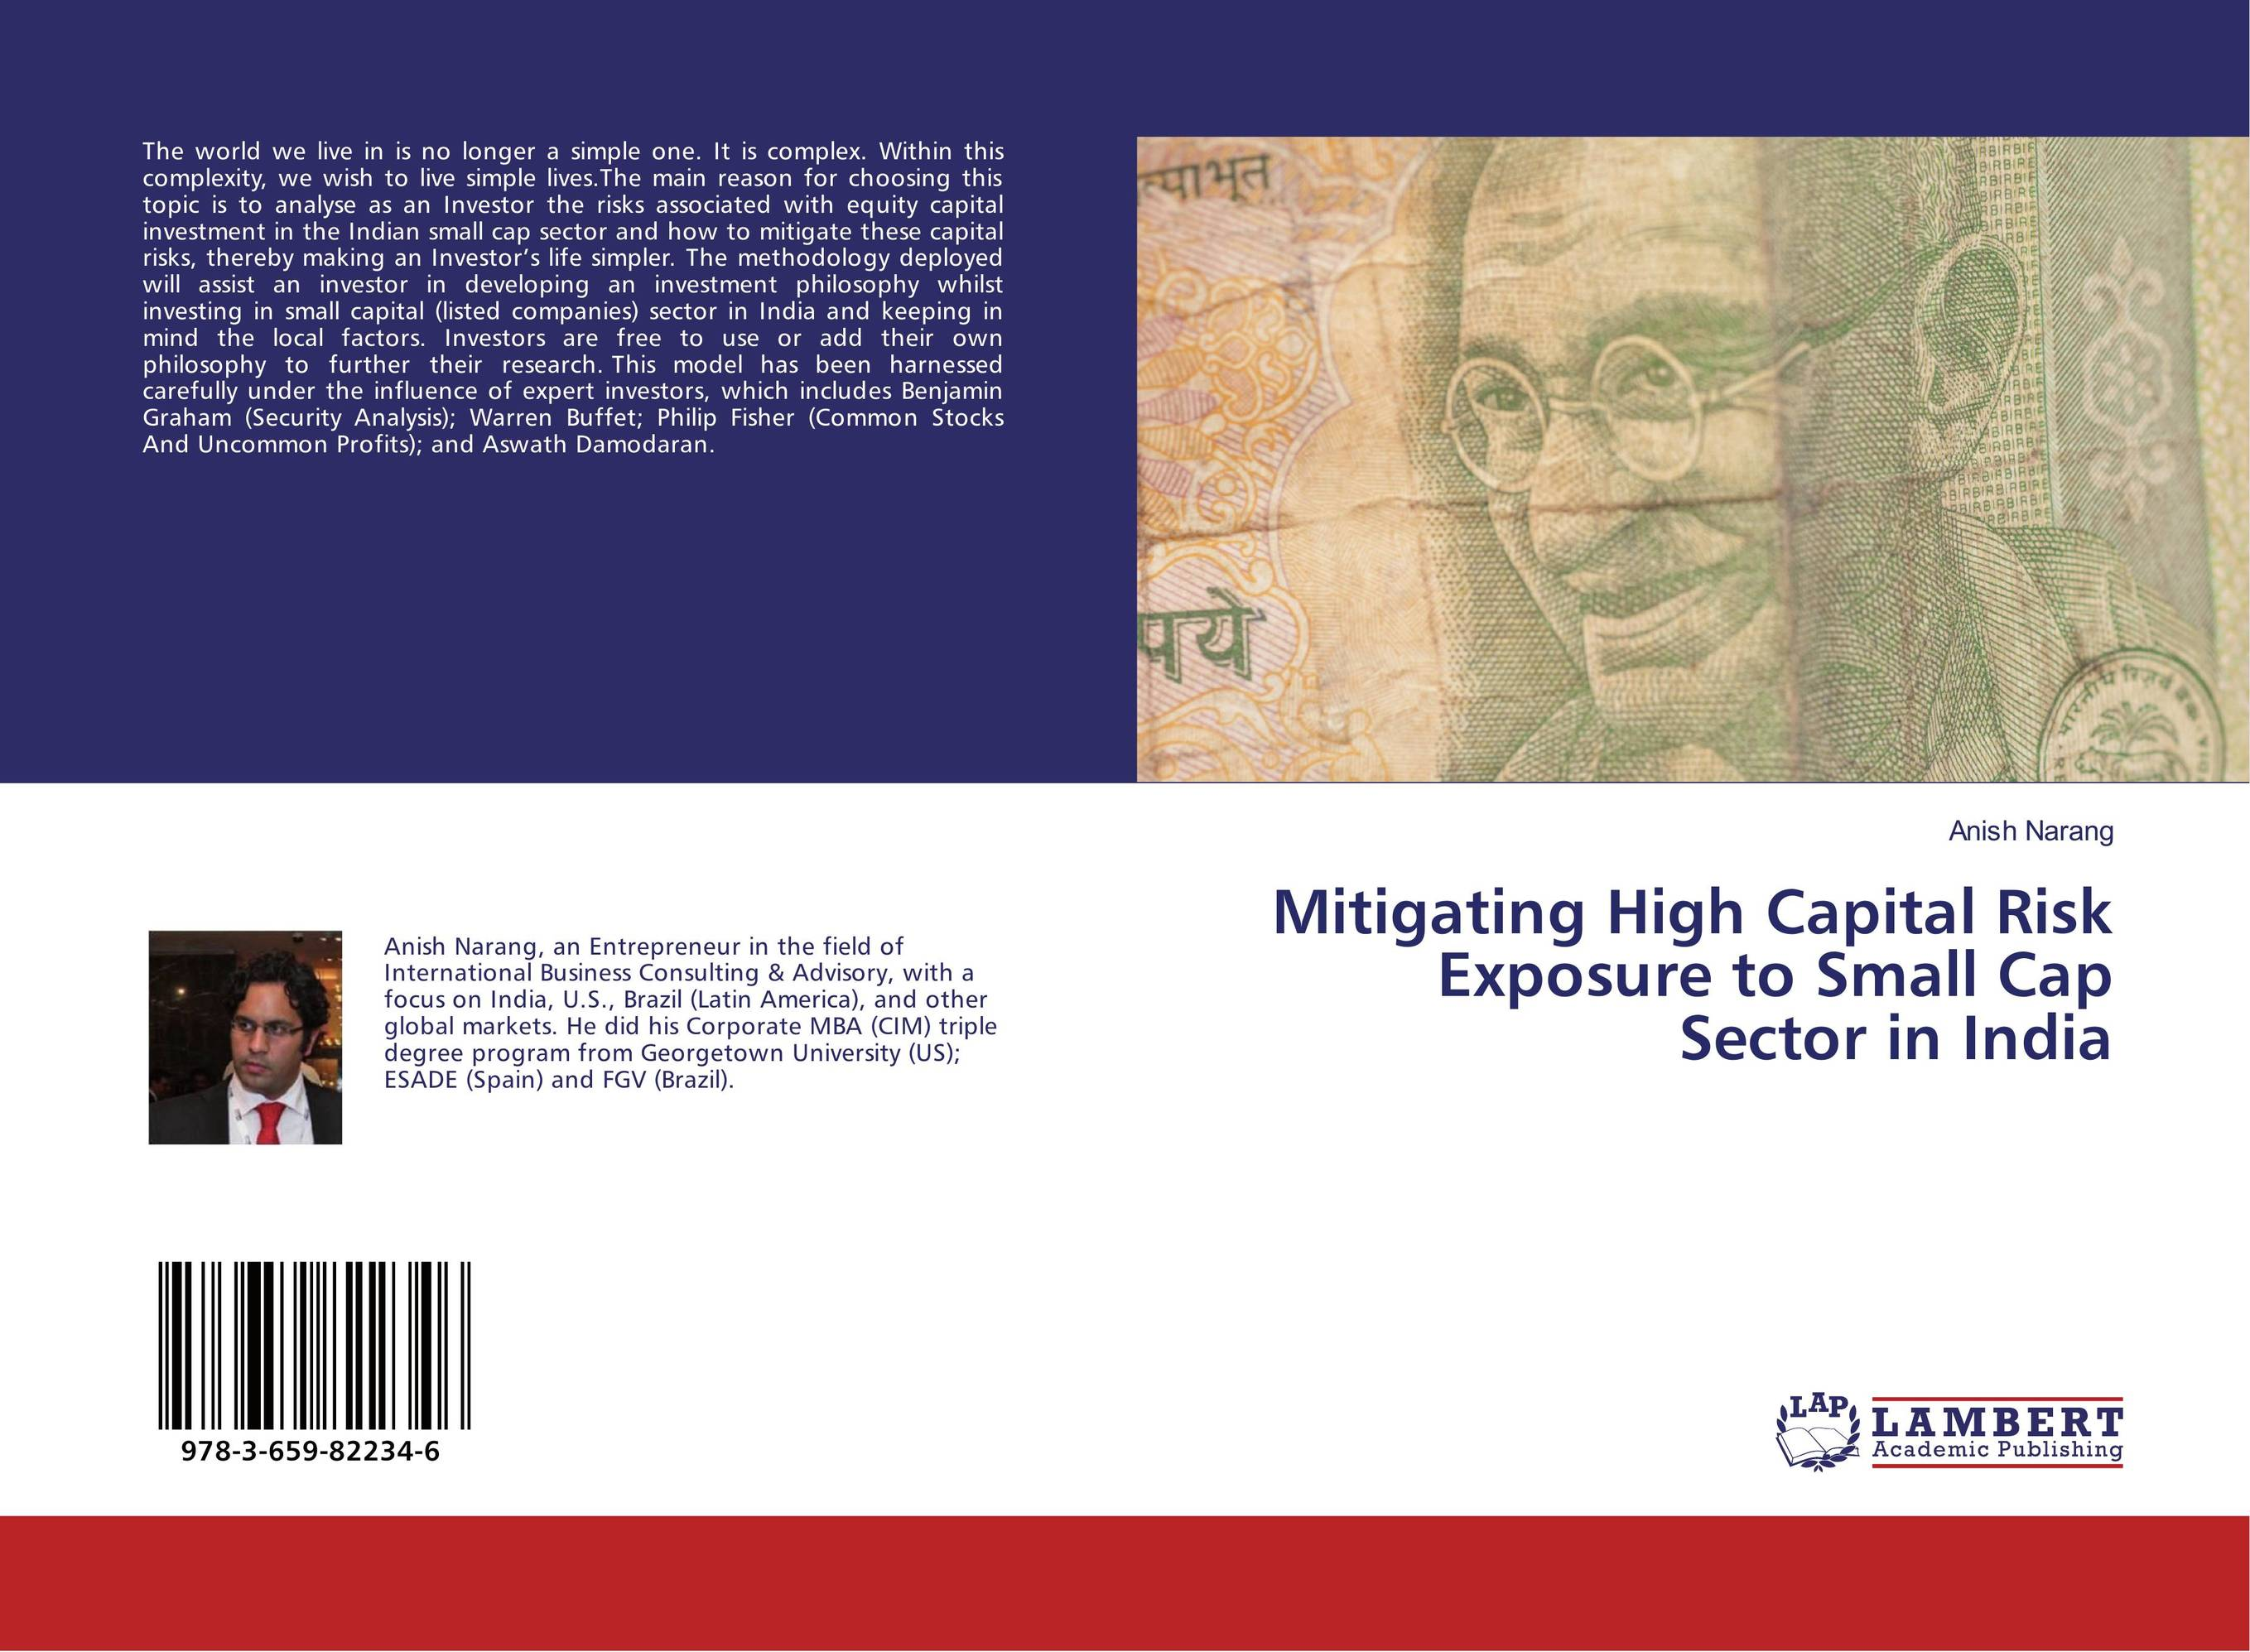 Mitigating High Capital Risk Exposure to Small Cap Sector in India muslims in globalized india 1991 2007 an analysis